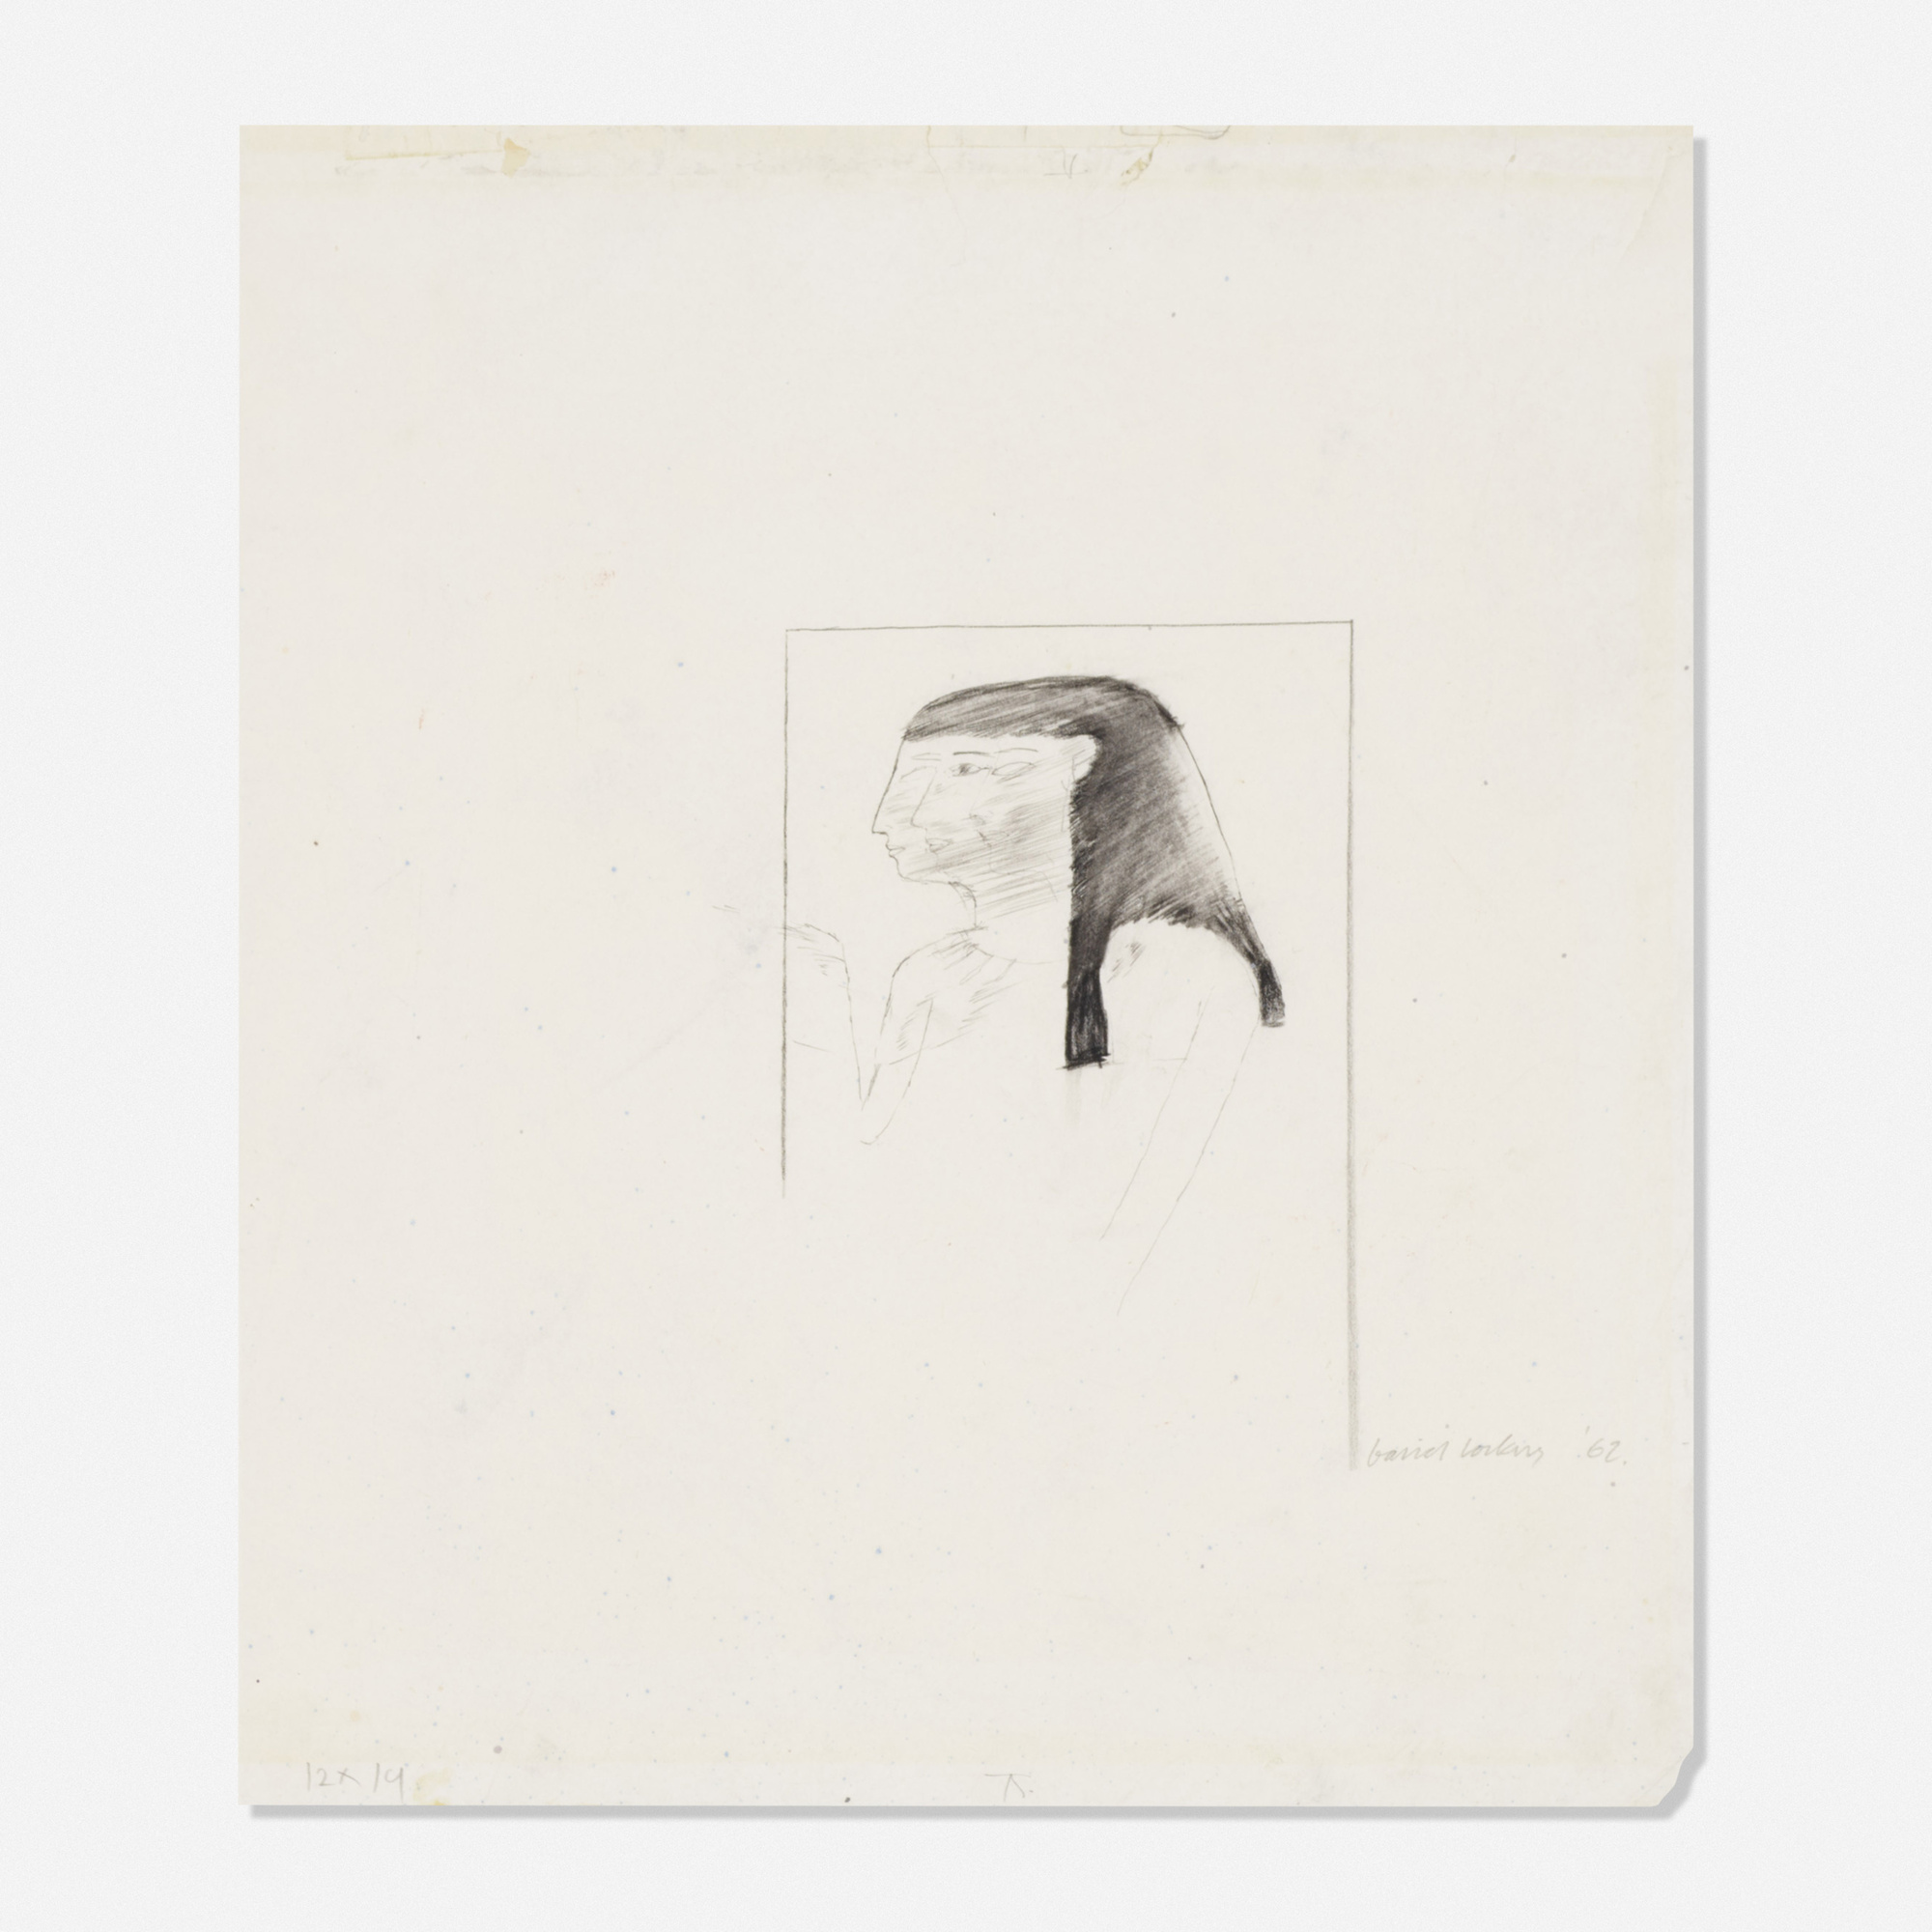 239: David Hockney / Untitled (study for The First Marriage) (1 of 1)